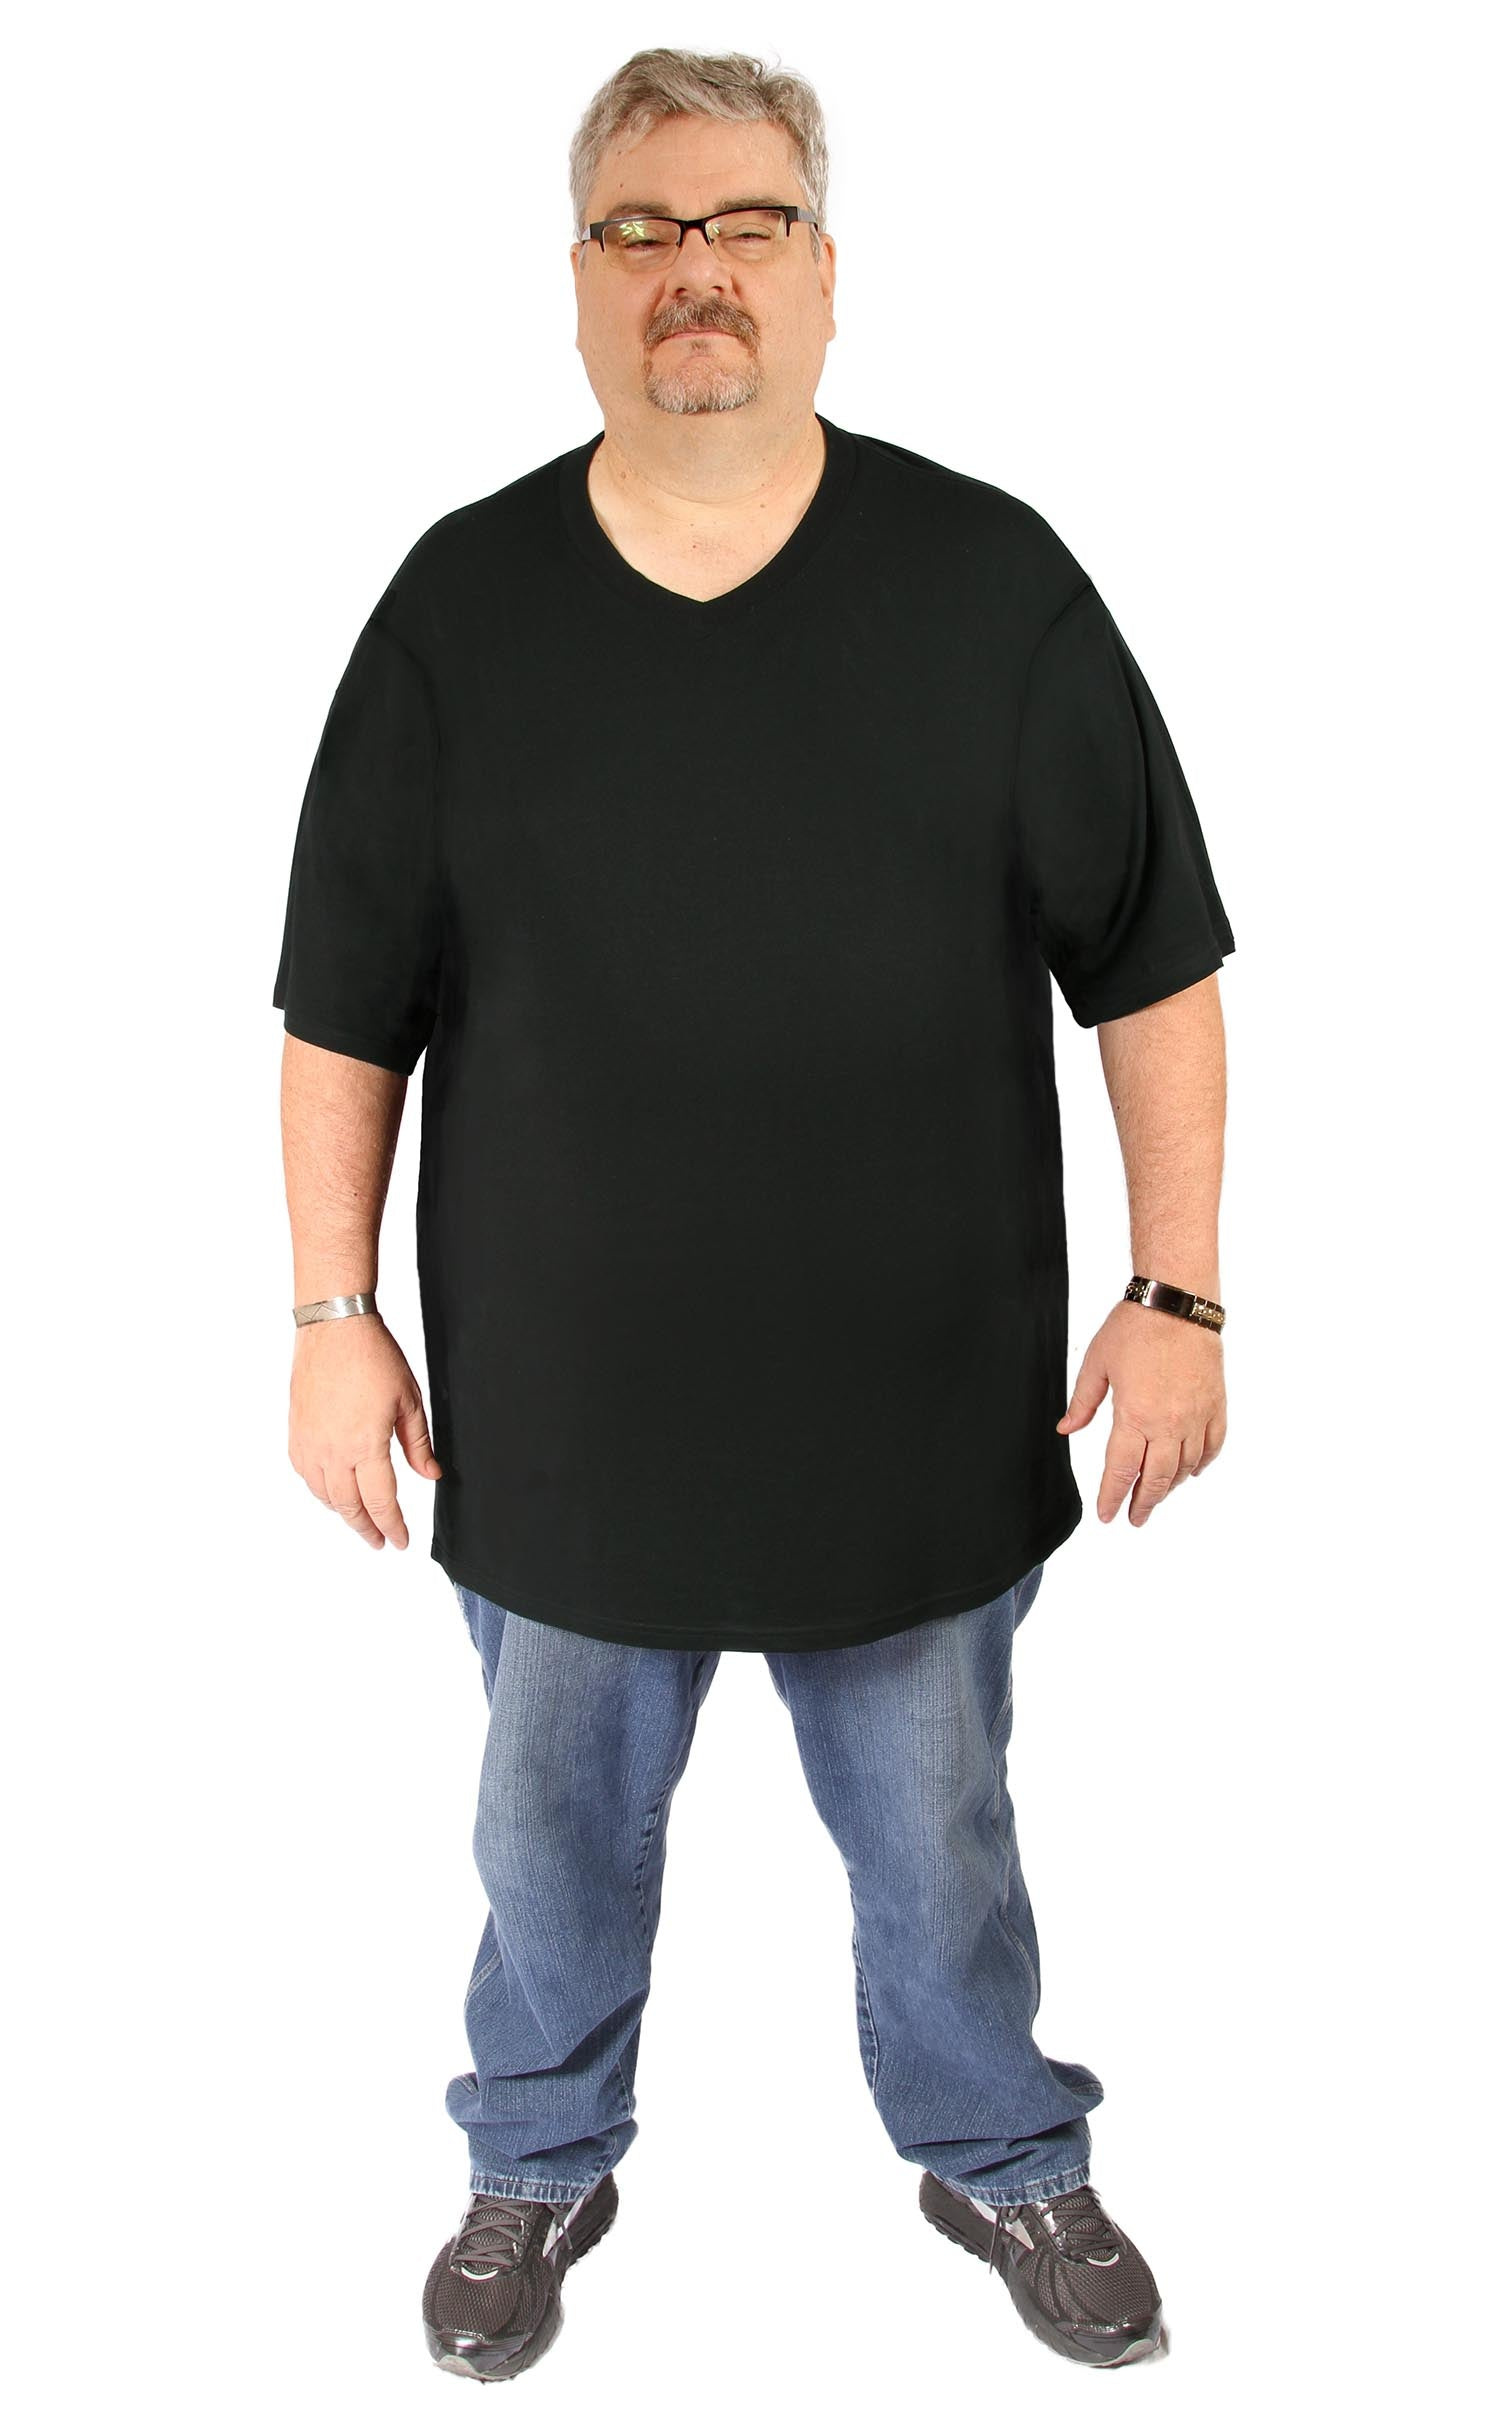 Tall Sizes of Bamboo T-Shirts Have Finally Arrived at Big Boy Bamboo